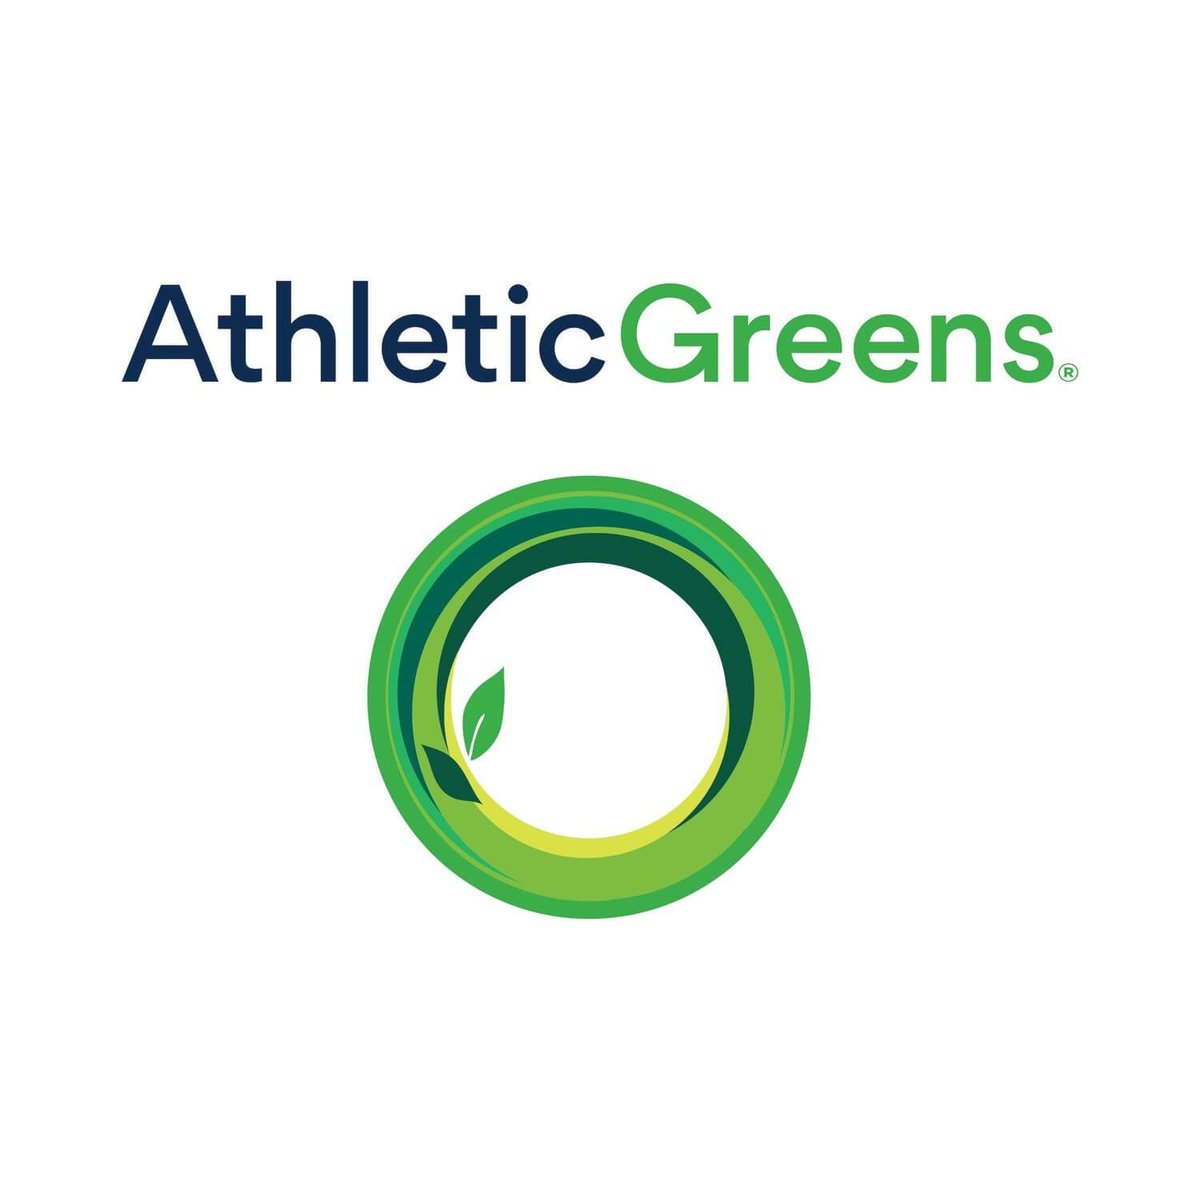 @ChrisEvans_HTW is excited to announce our partnership with @AthleticGreens. Listen tomorrow to @ProfNoelFitz and @richroll Monday to the amazing offer @AthleticGreens are offering our listeners. 🌱🎙✌🏽